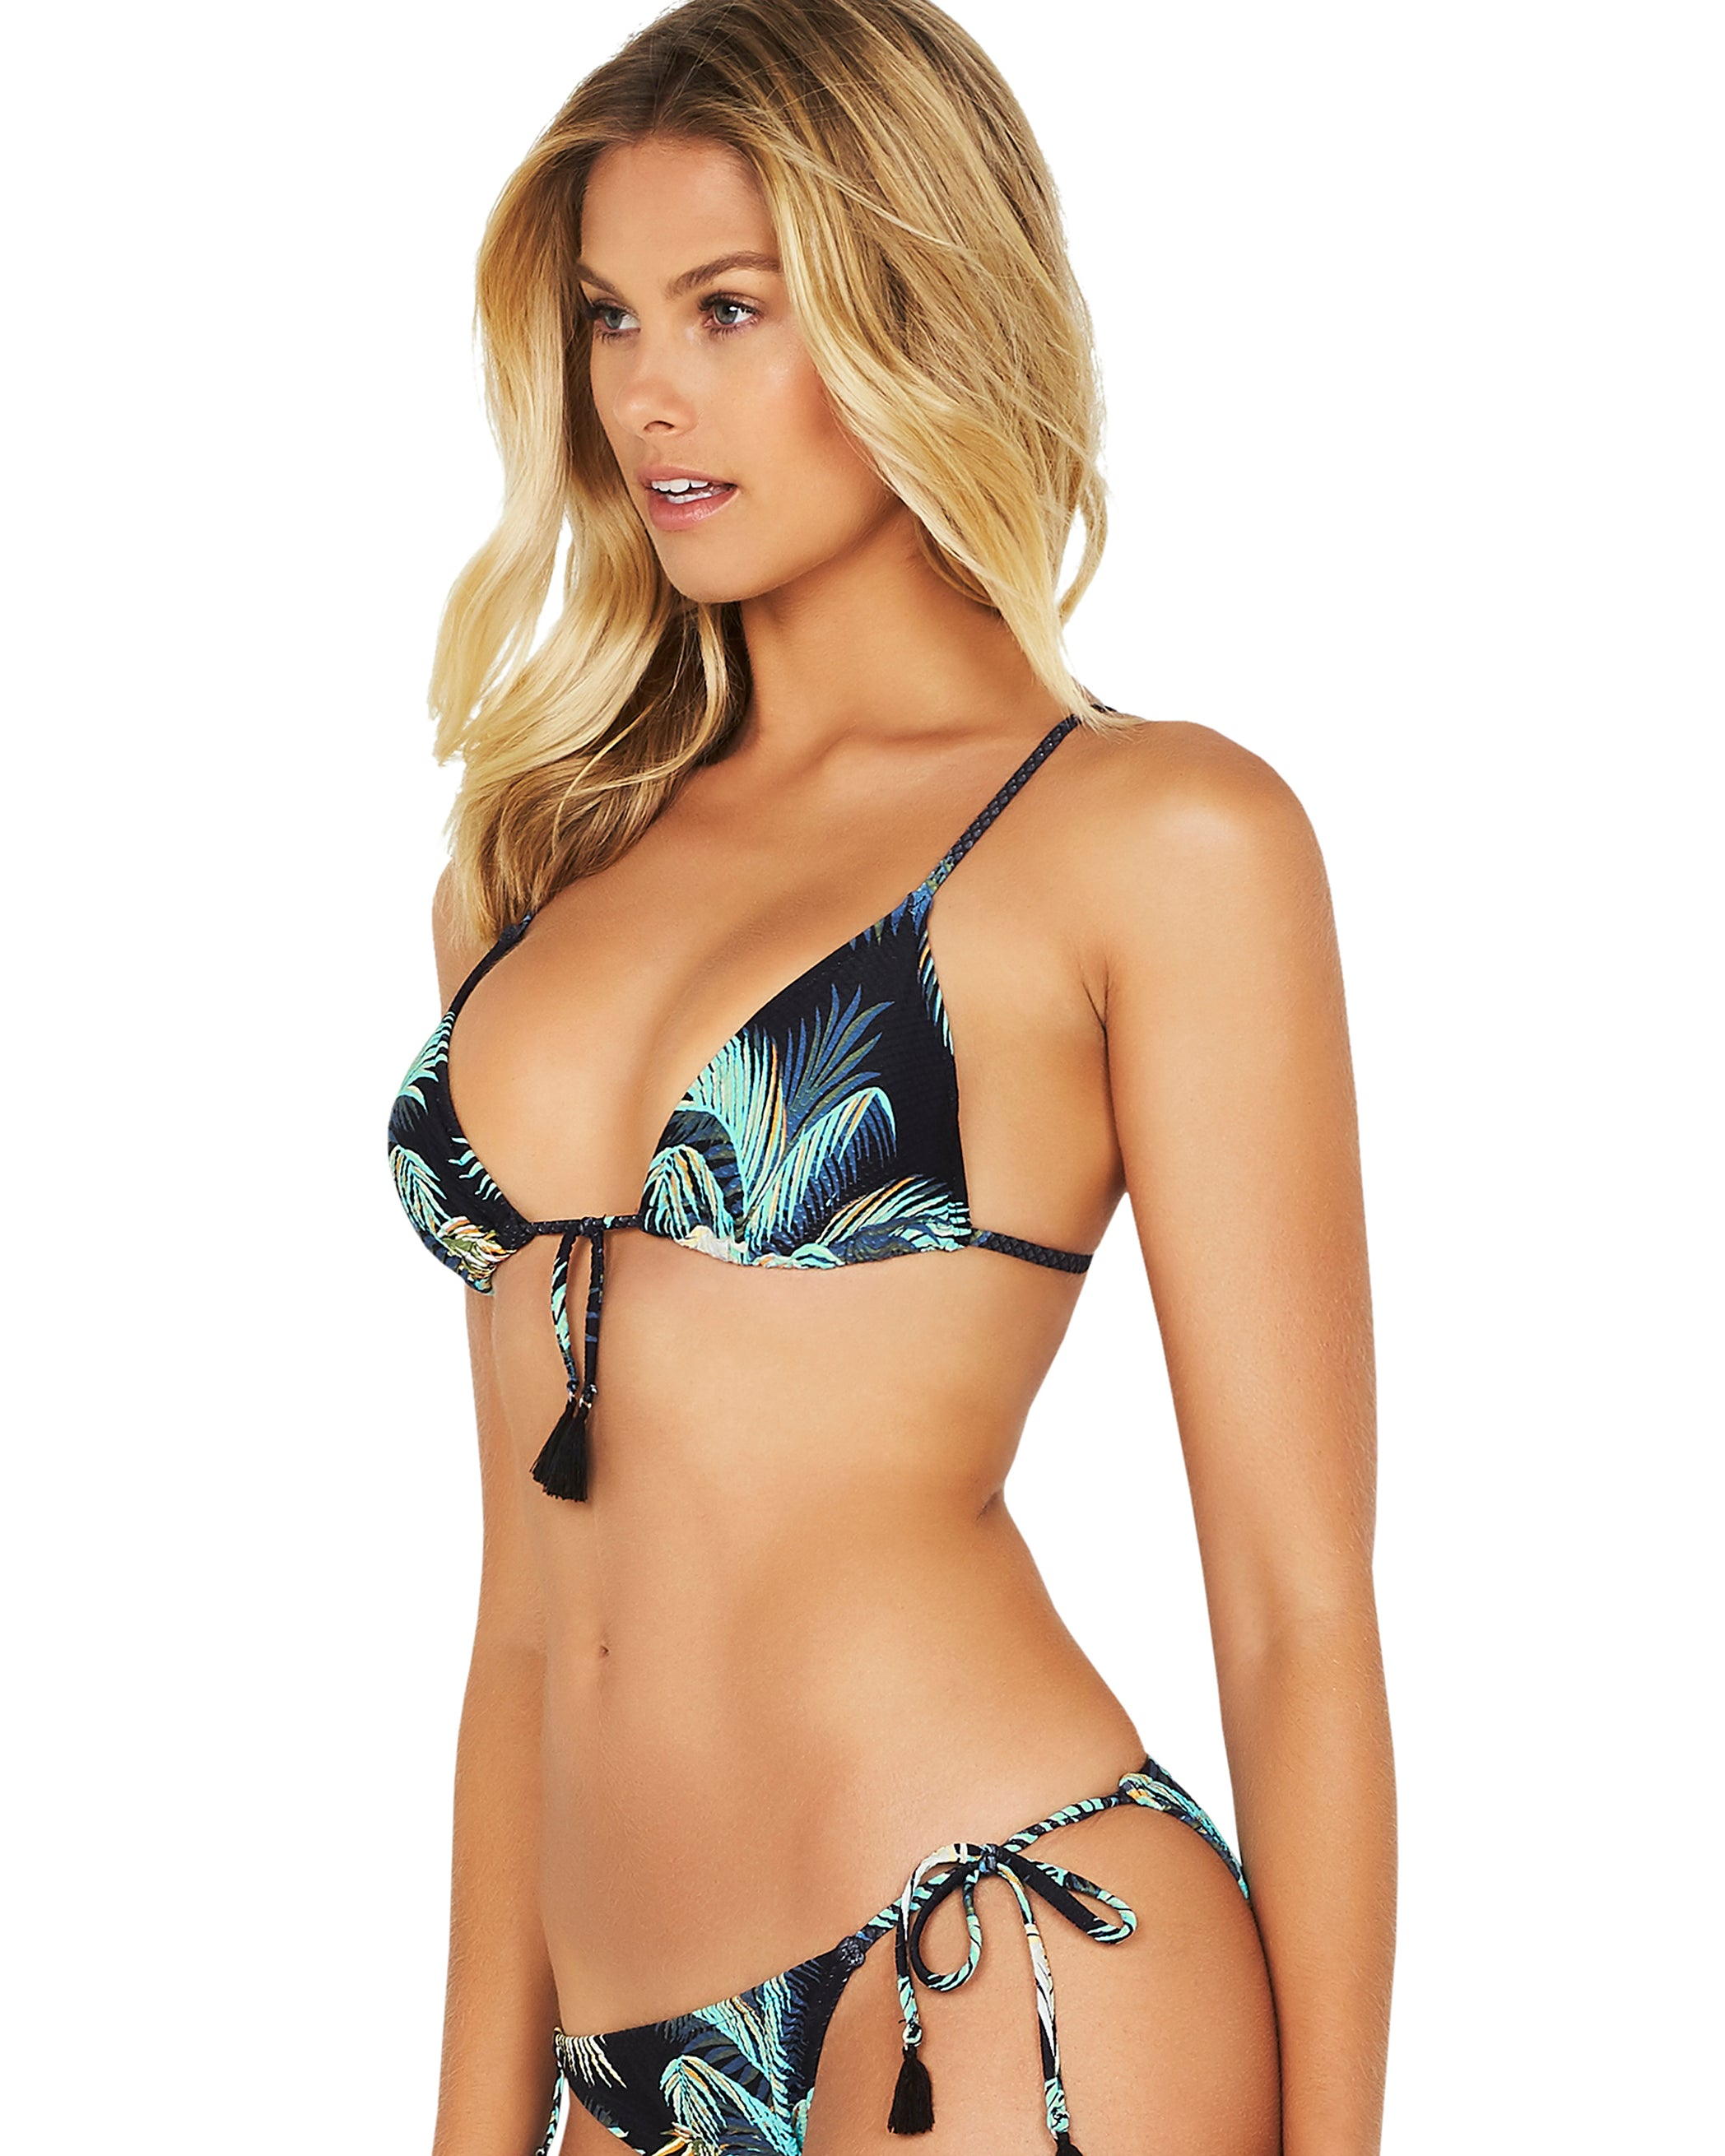 BARBADOS SLIDE TRIANGLE BIKINI TOP